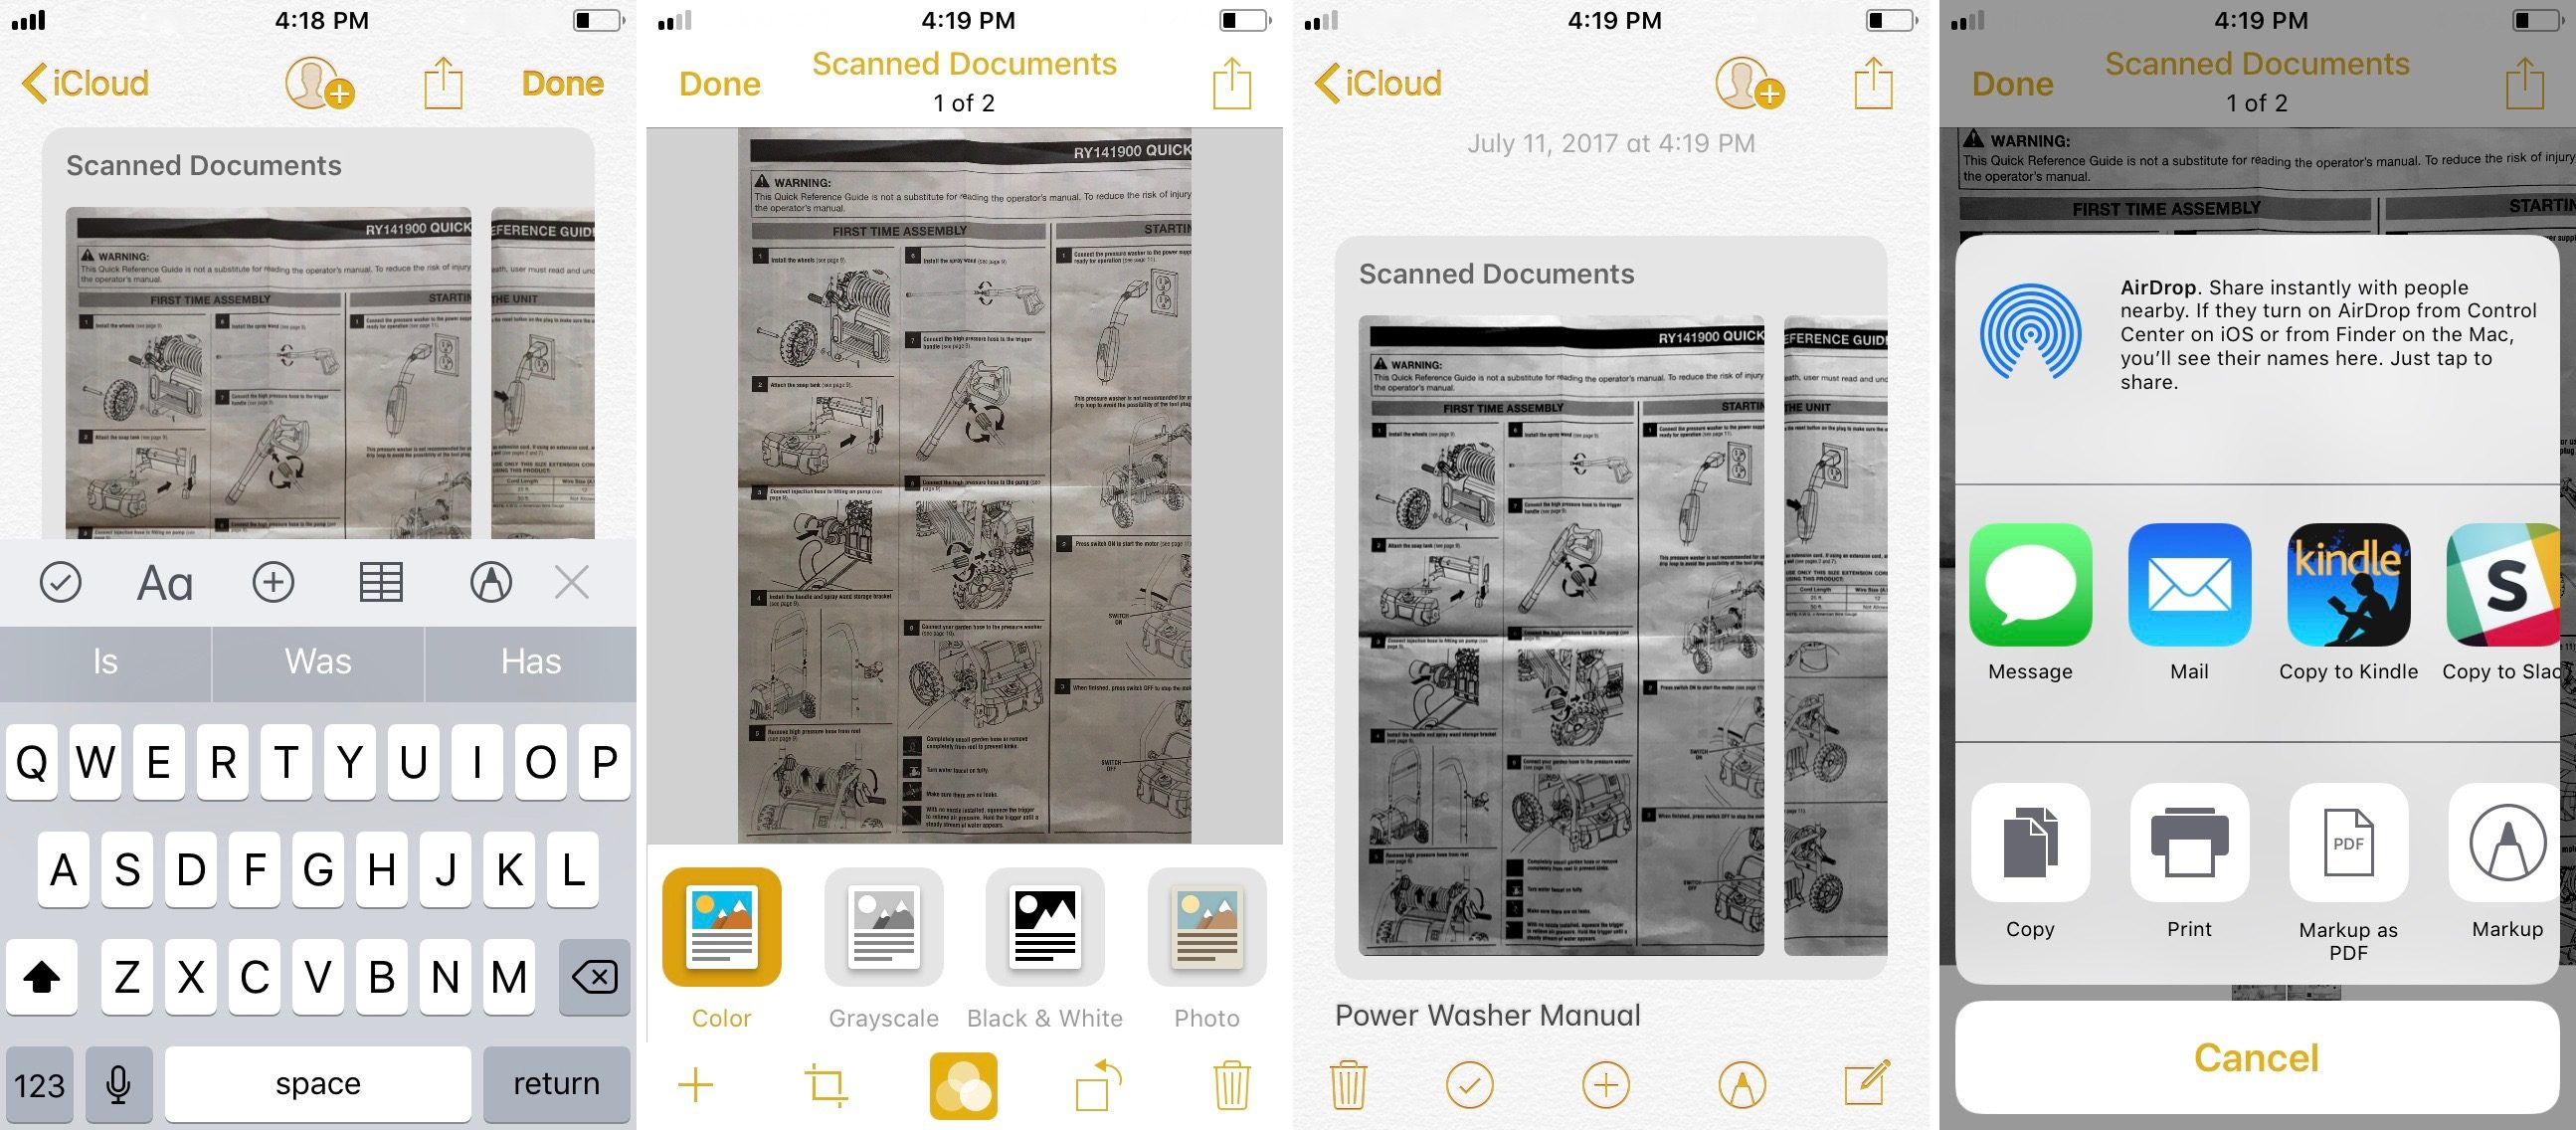 How to Use Apple's Document Scanner in iOS 11?